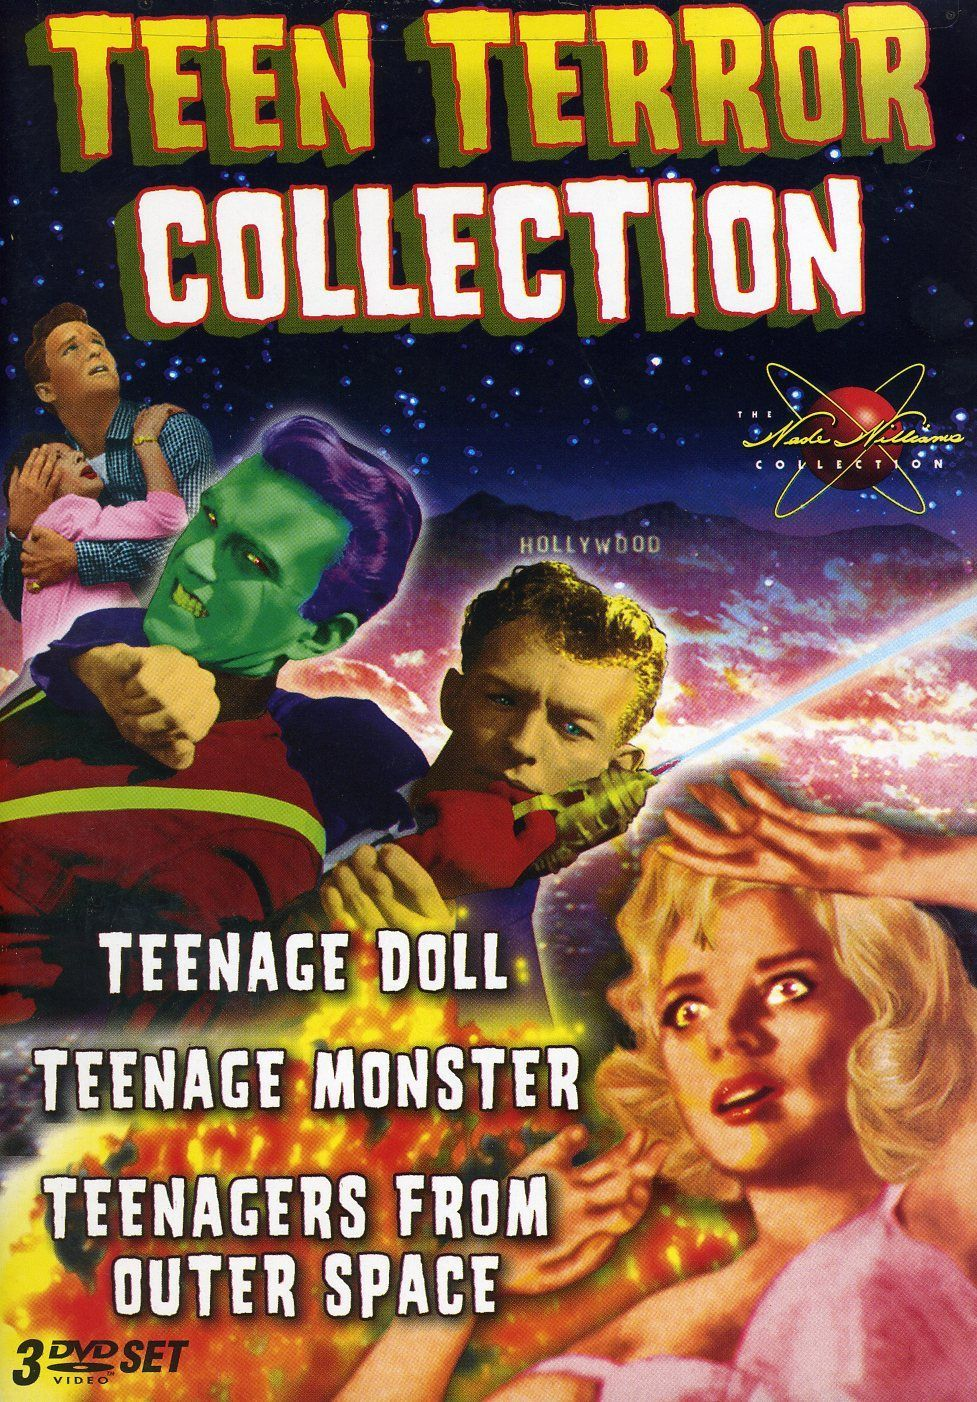 Picture on teengraphic movies